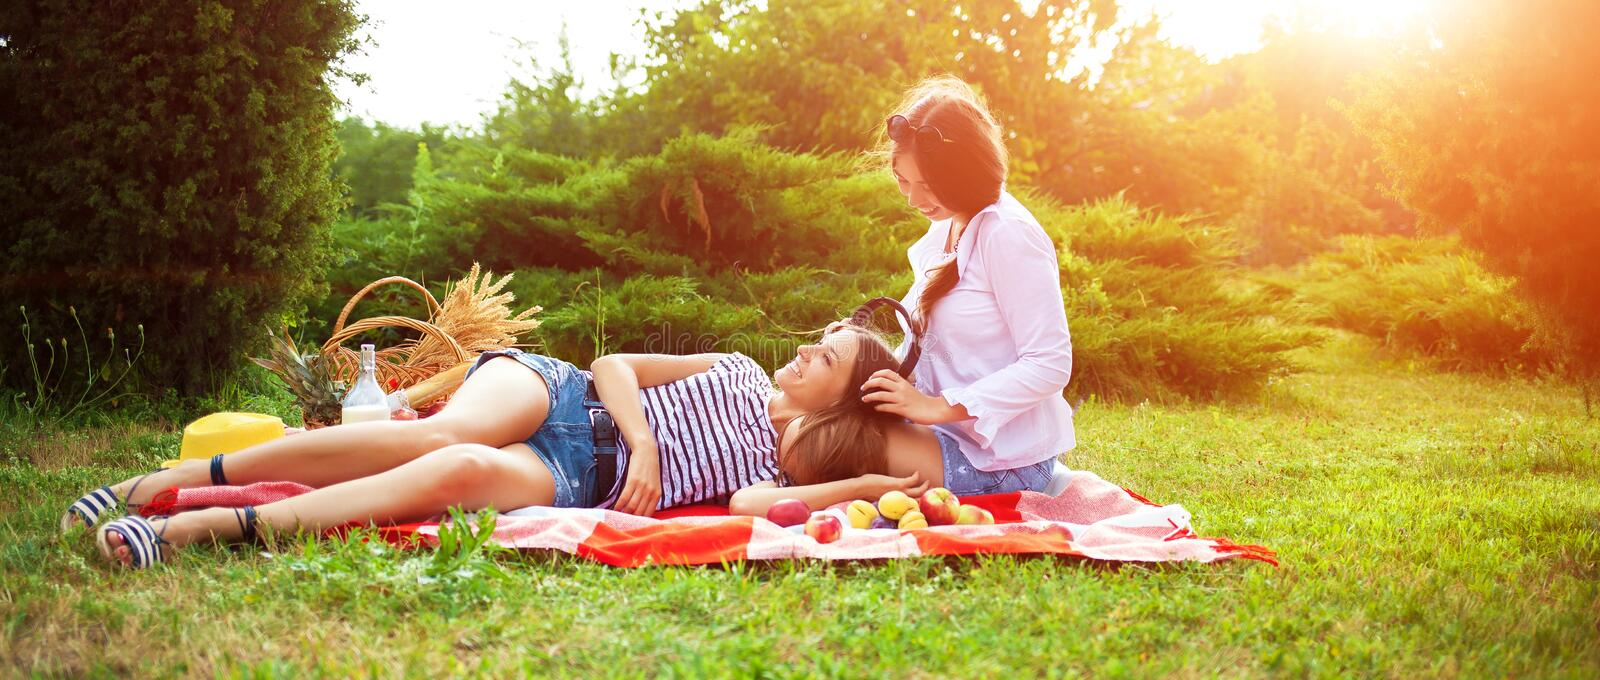 Two beautiful young women on a picnic listening to music on headphones stock images